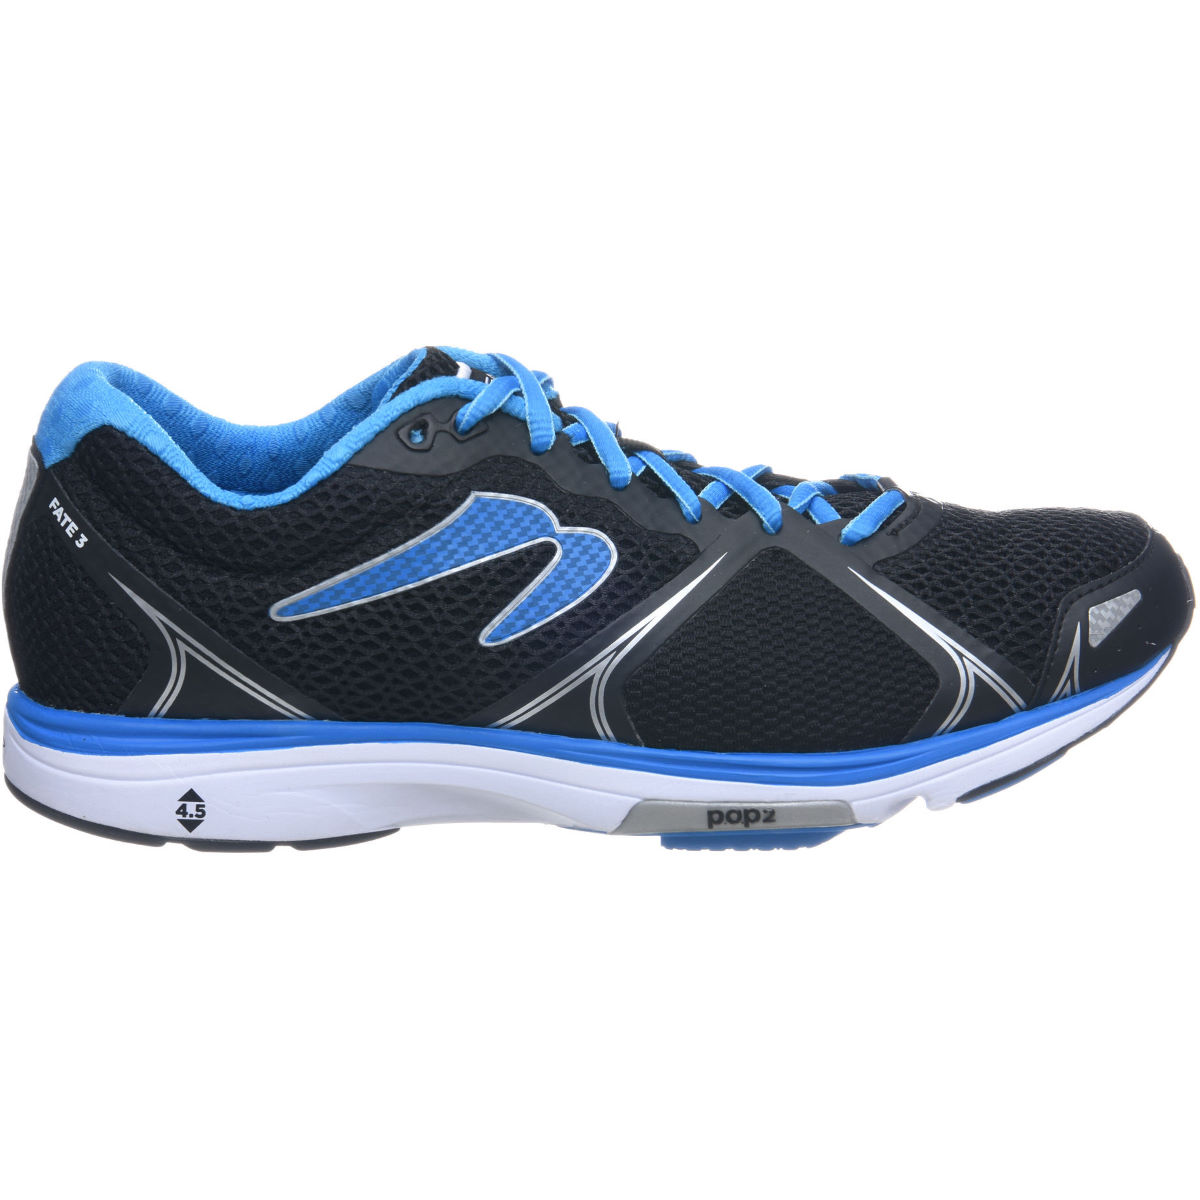 Newton Running Shoes Fate III Shoes - UK 7 Black/Blue